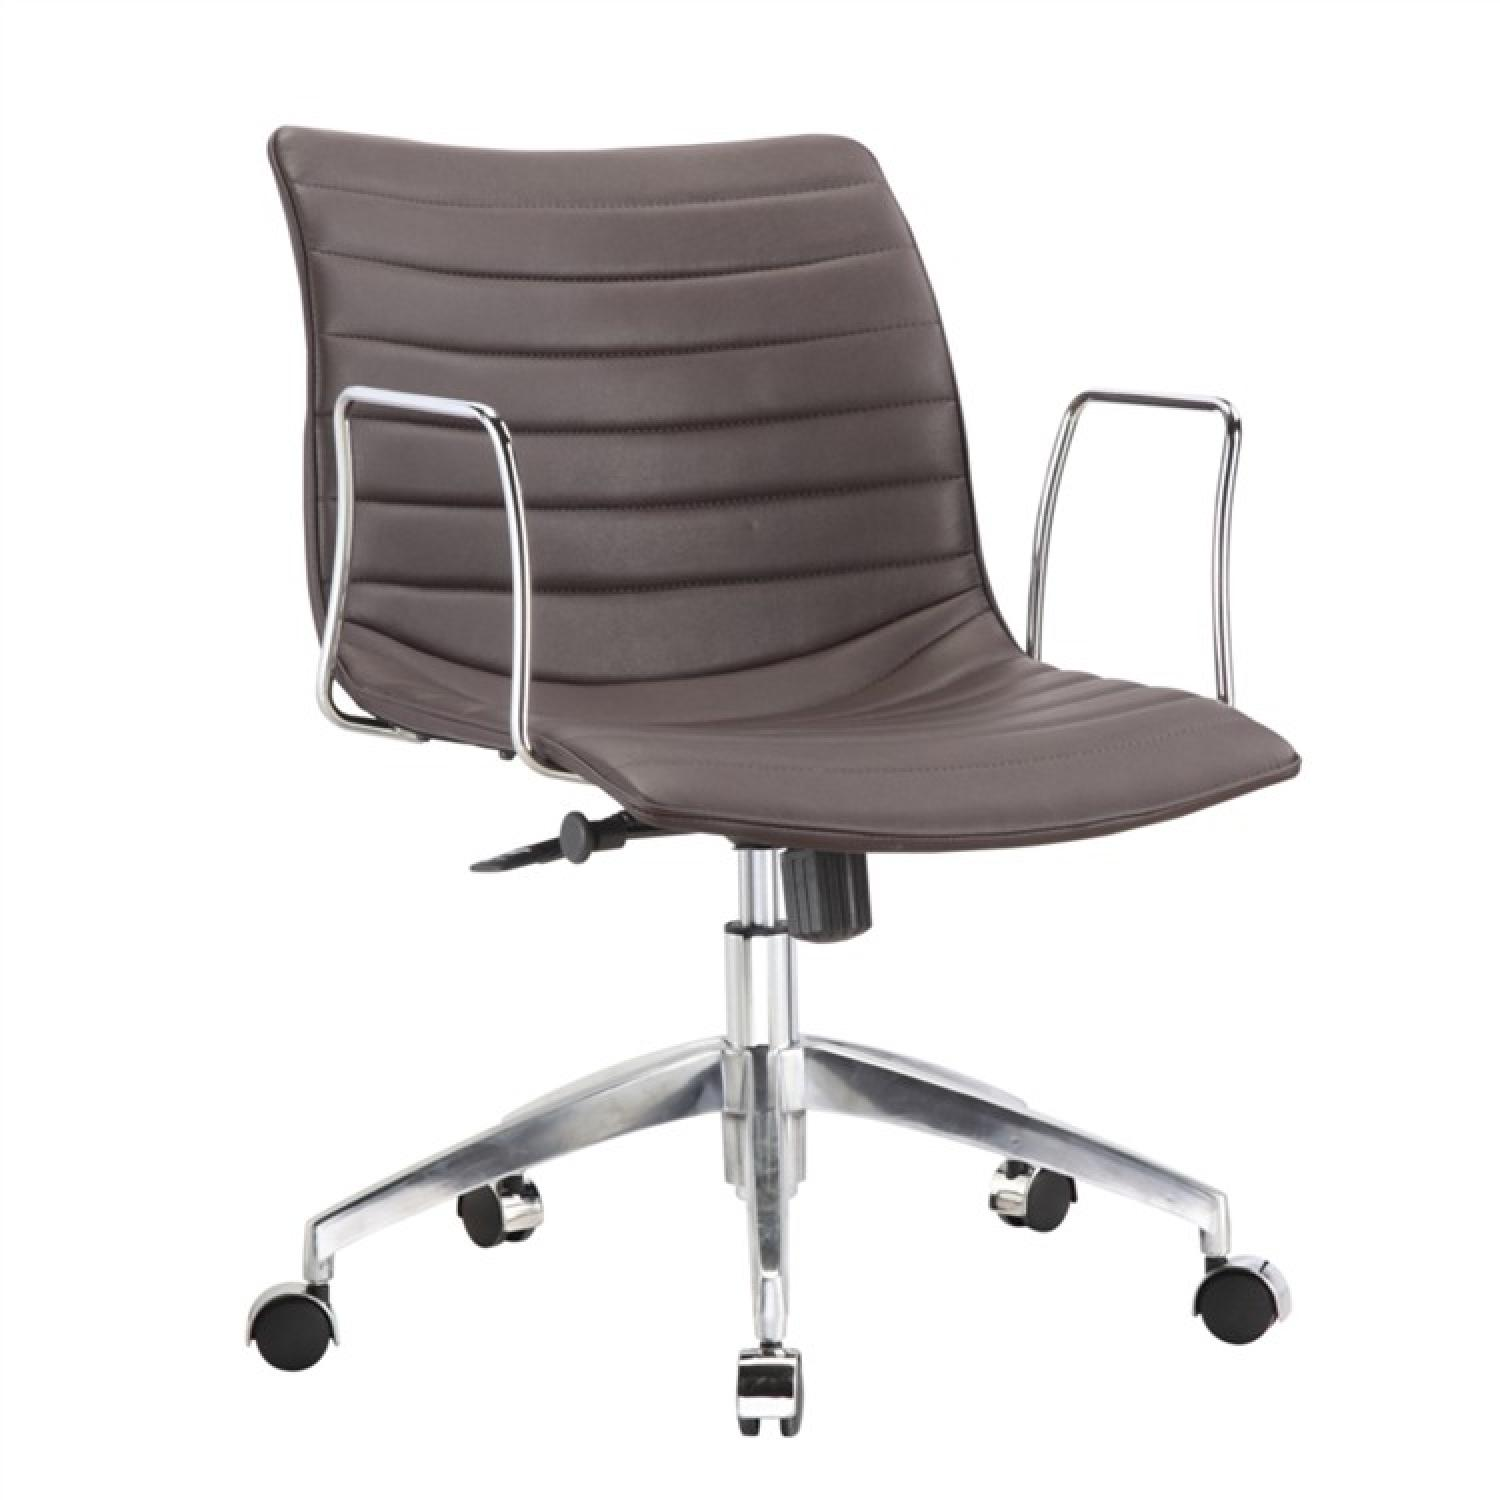 Modern Mid-Back Office Chair w/ Chrome Arms & Dark Brown Lea - image-0